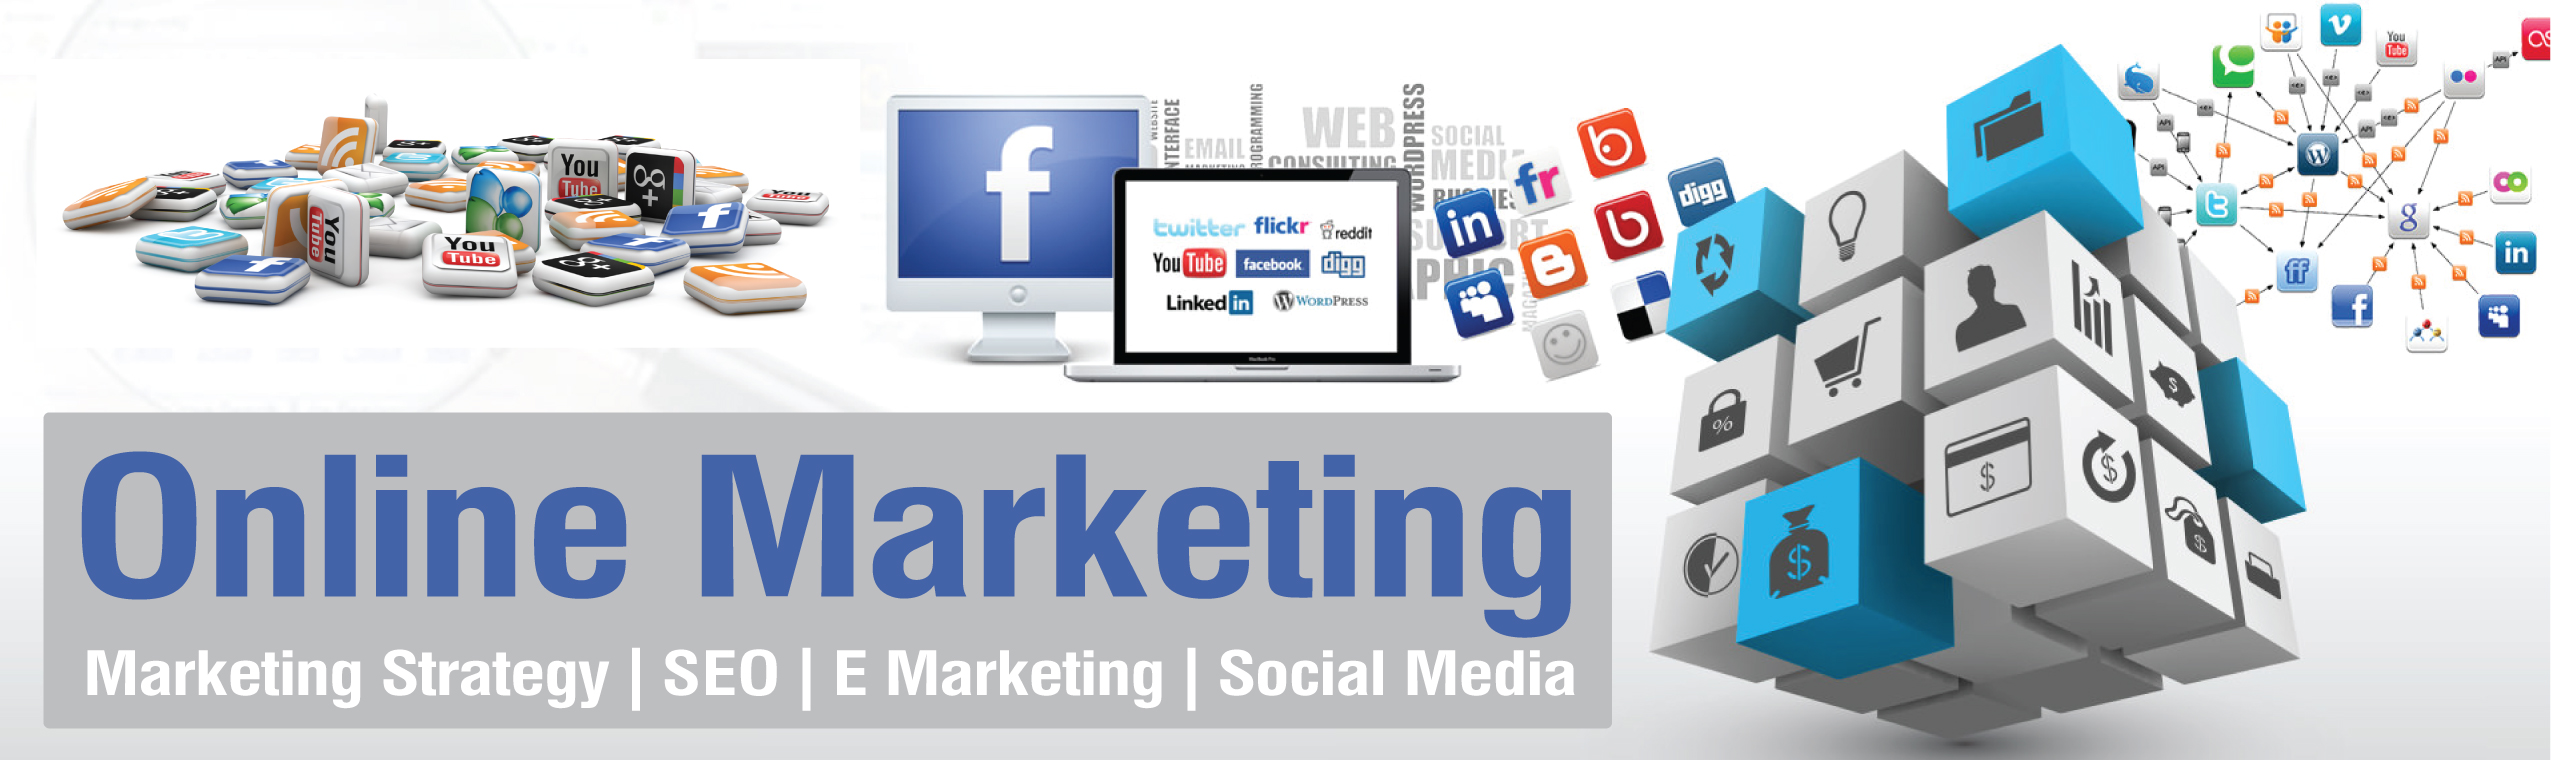 online-marketing-cover-image